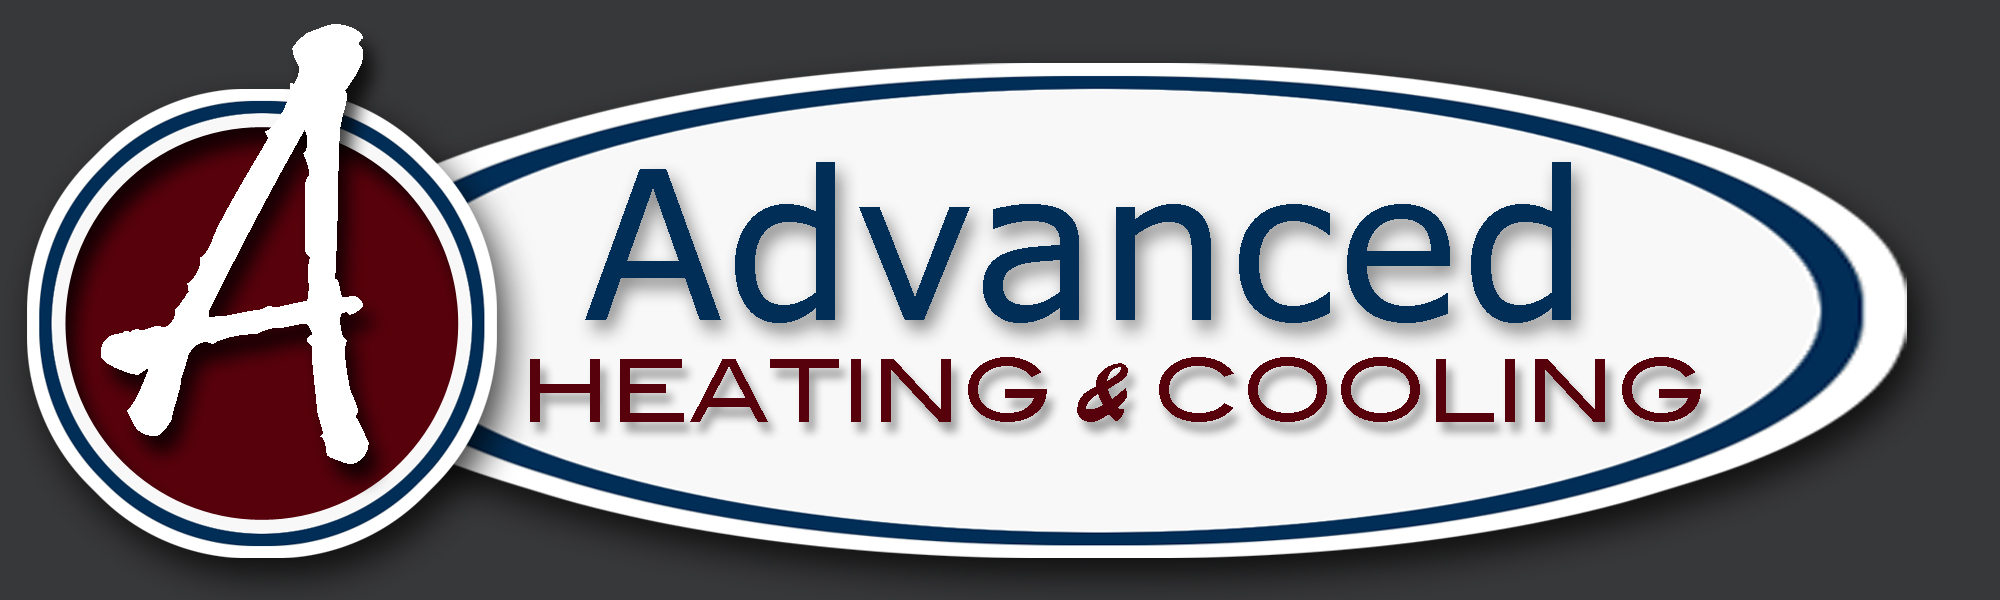 Advanced Heating and Cooling